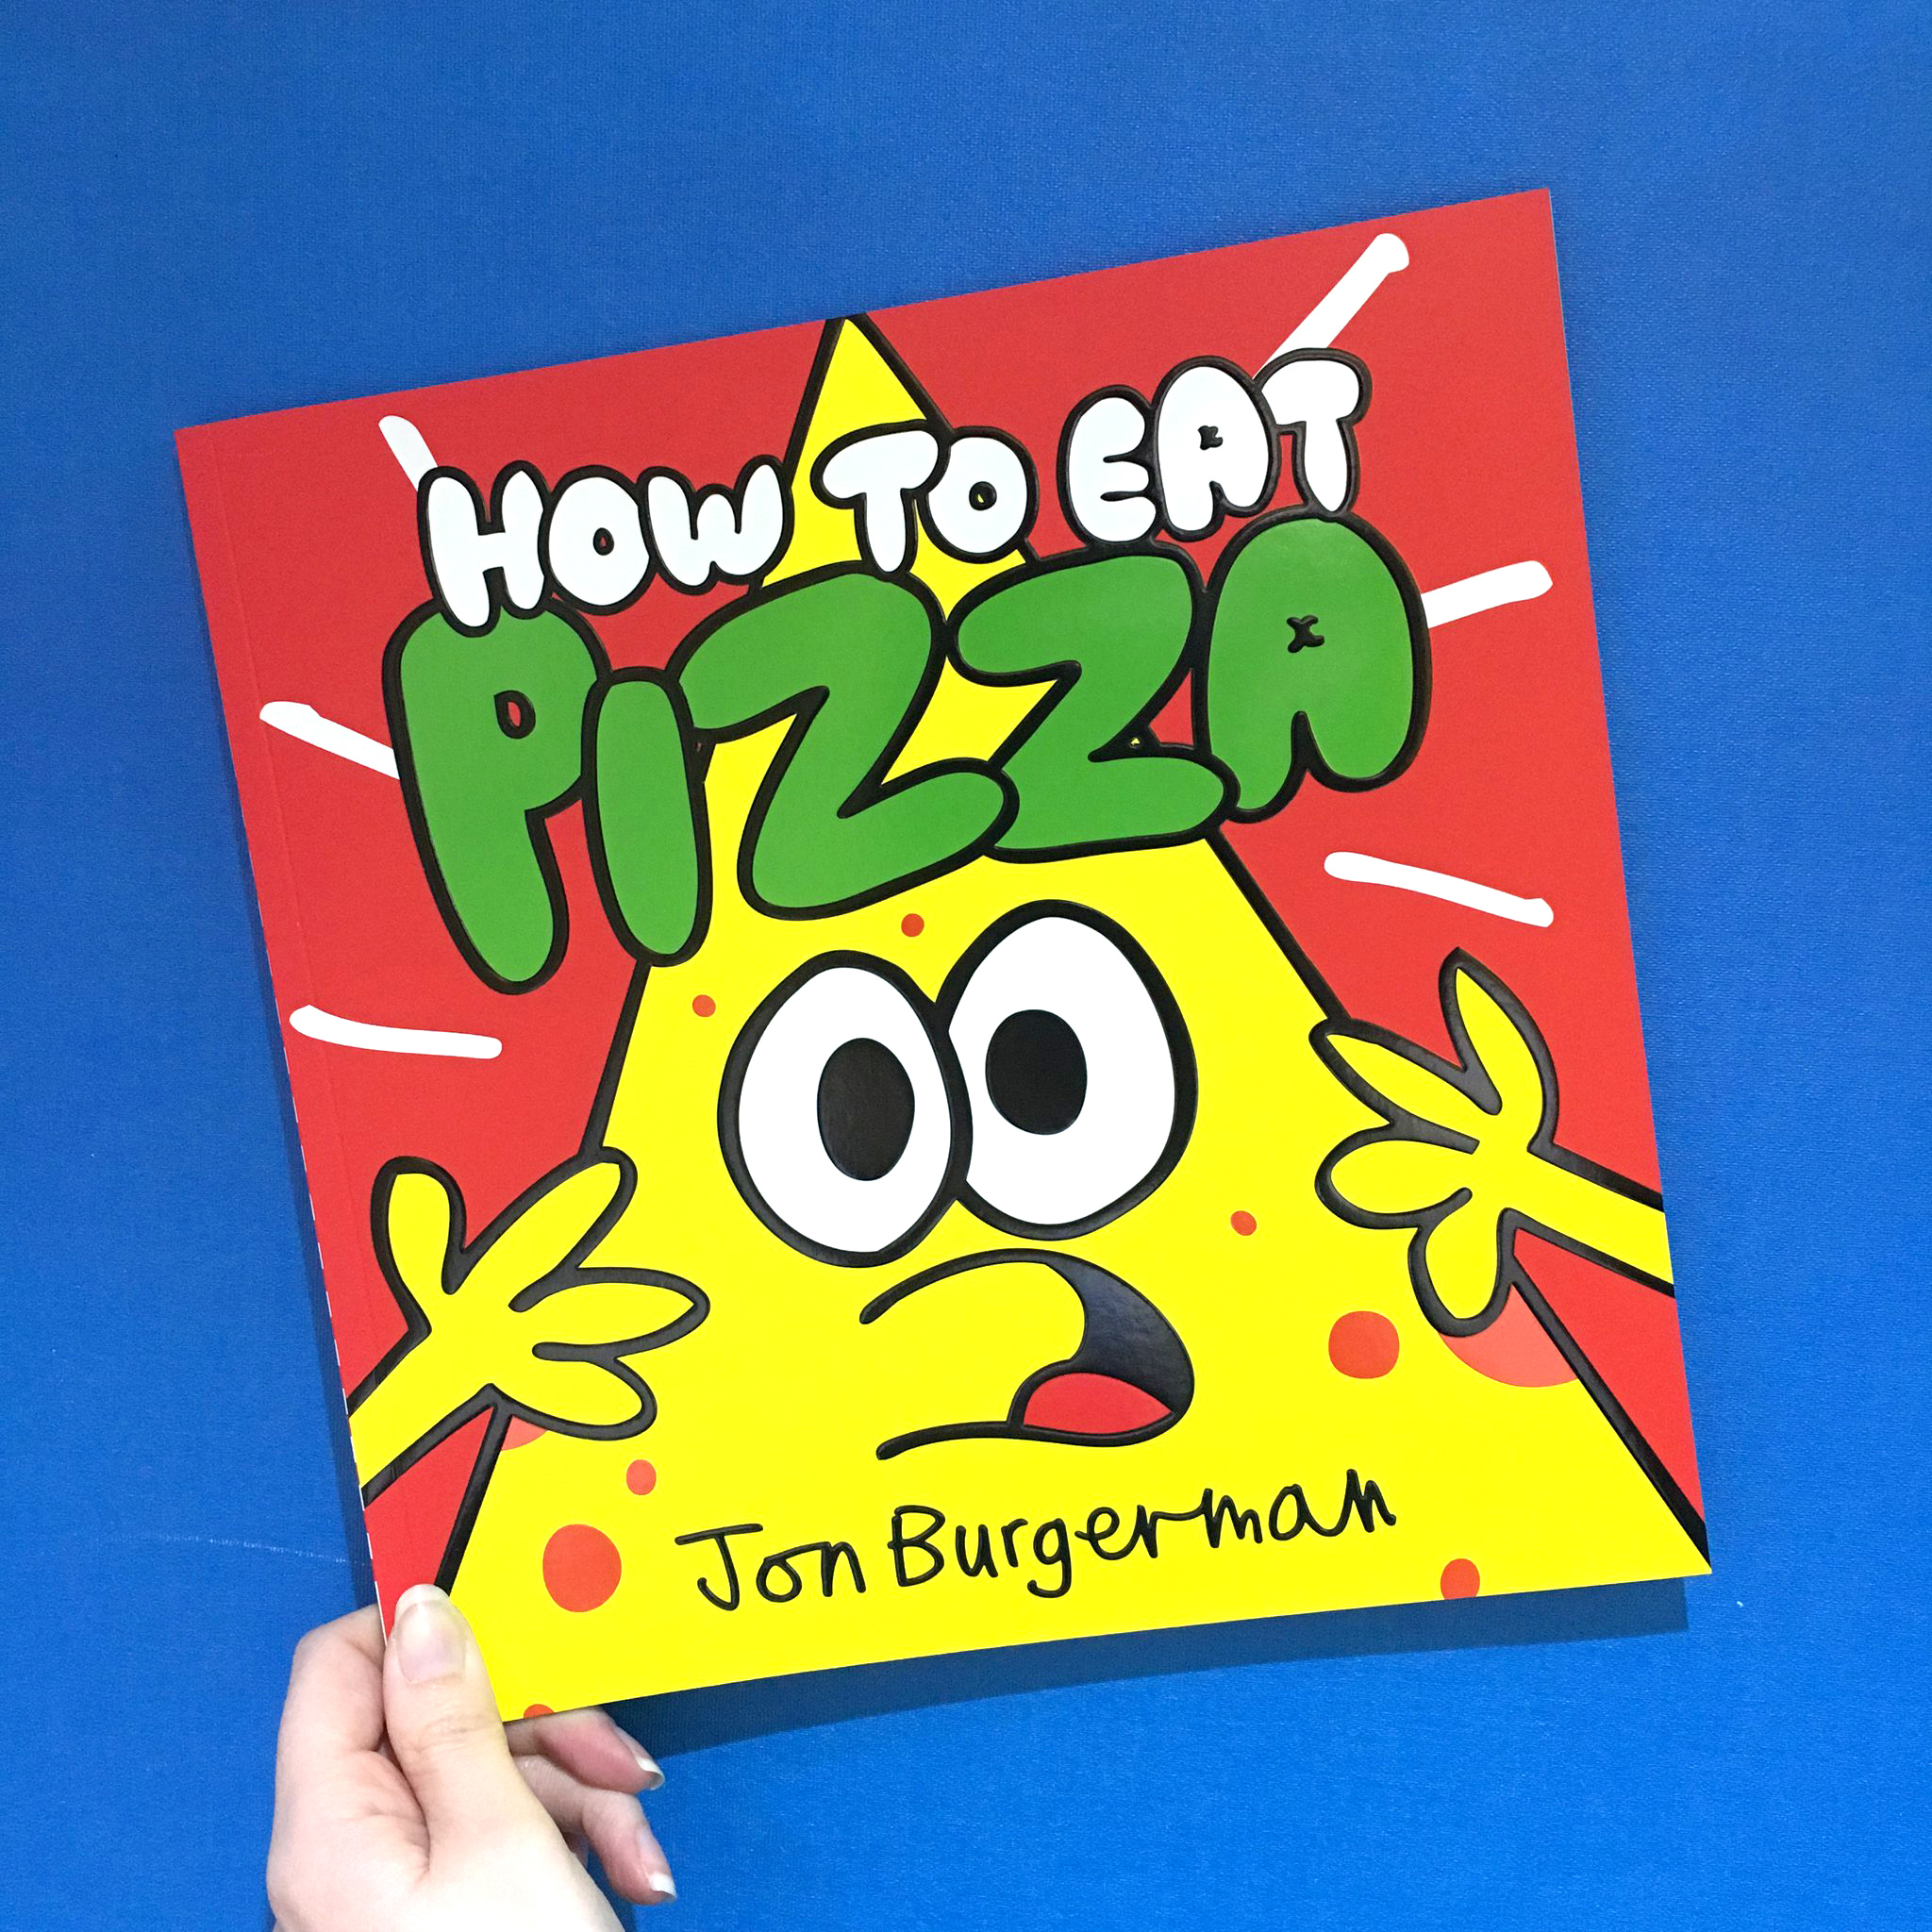 Buy How to Eat Pizza here